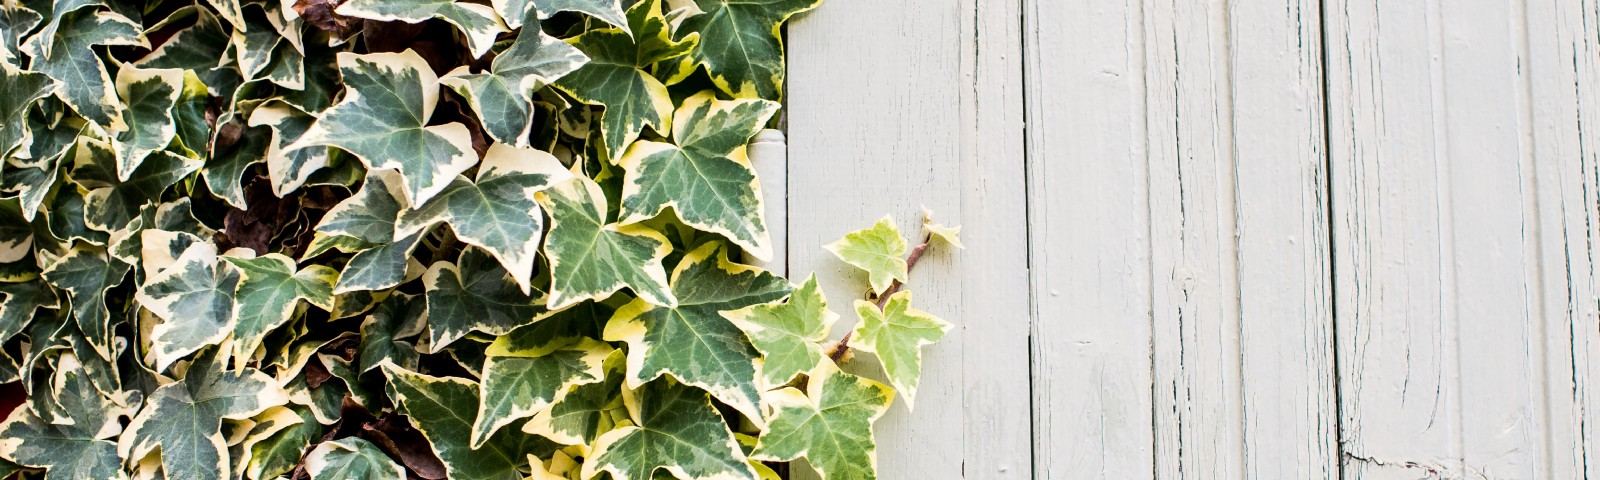 Green ivy leaves covering up half of a bleached white wall. Contrasts.